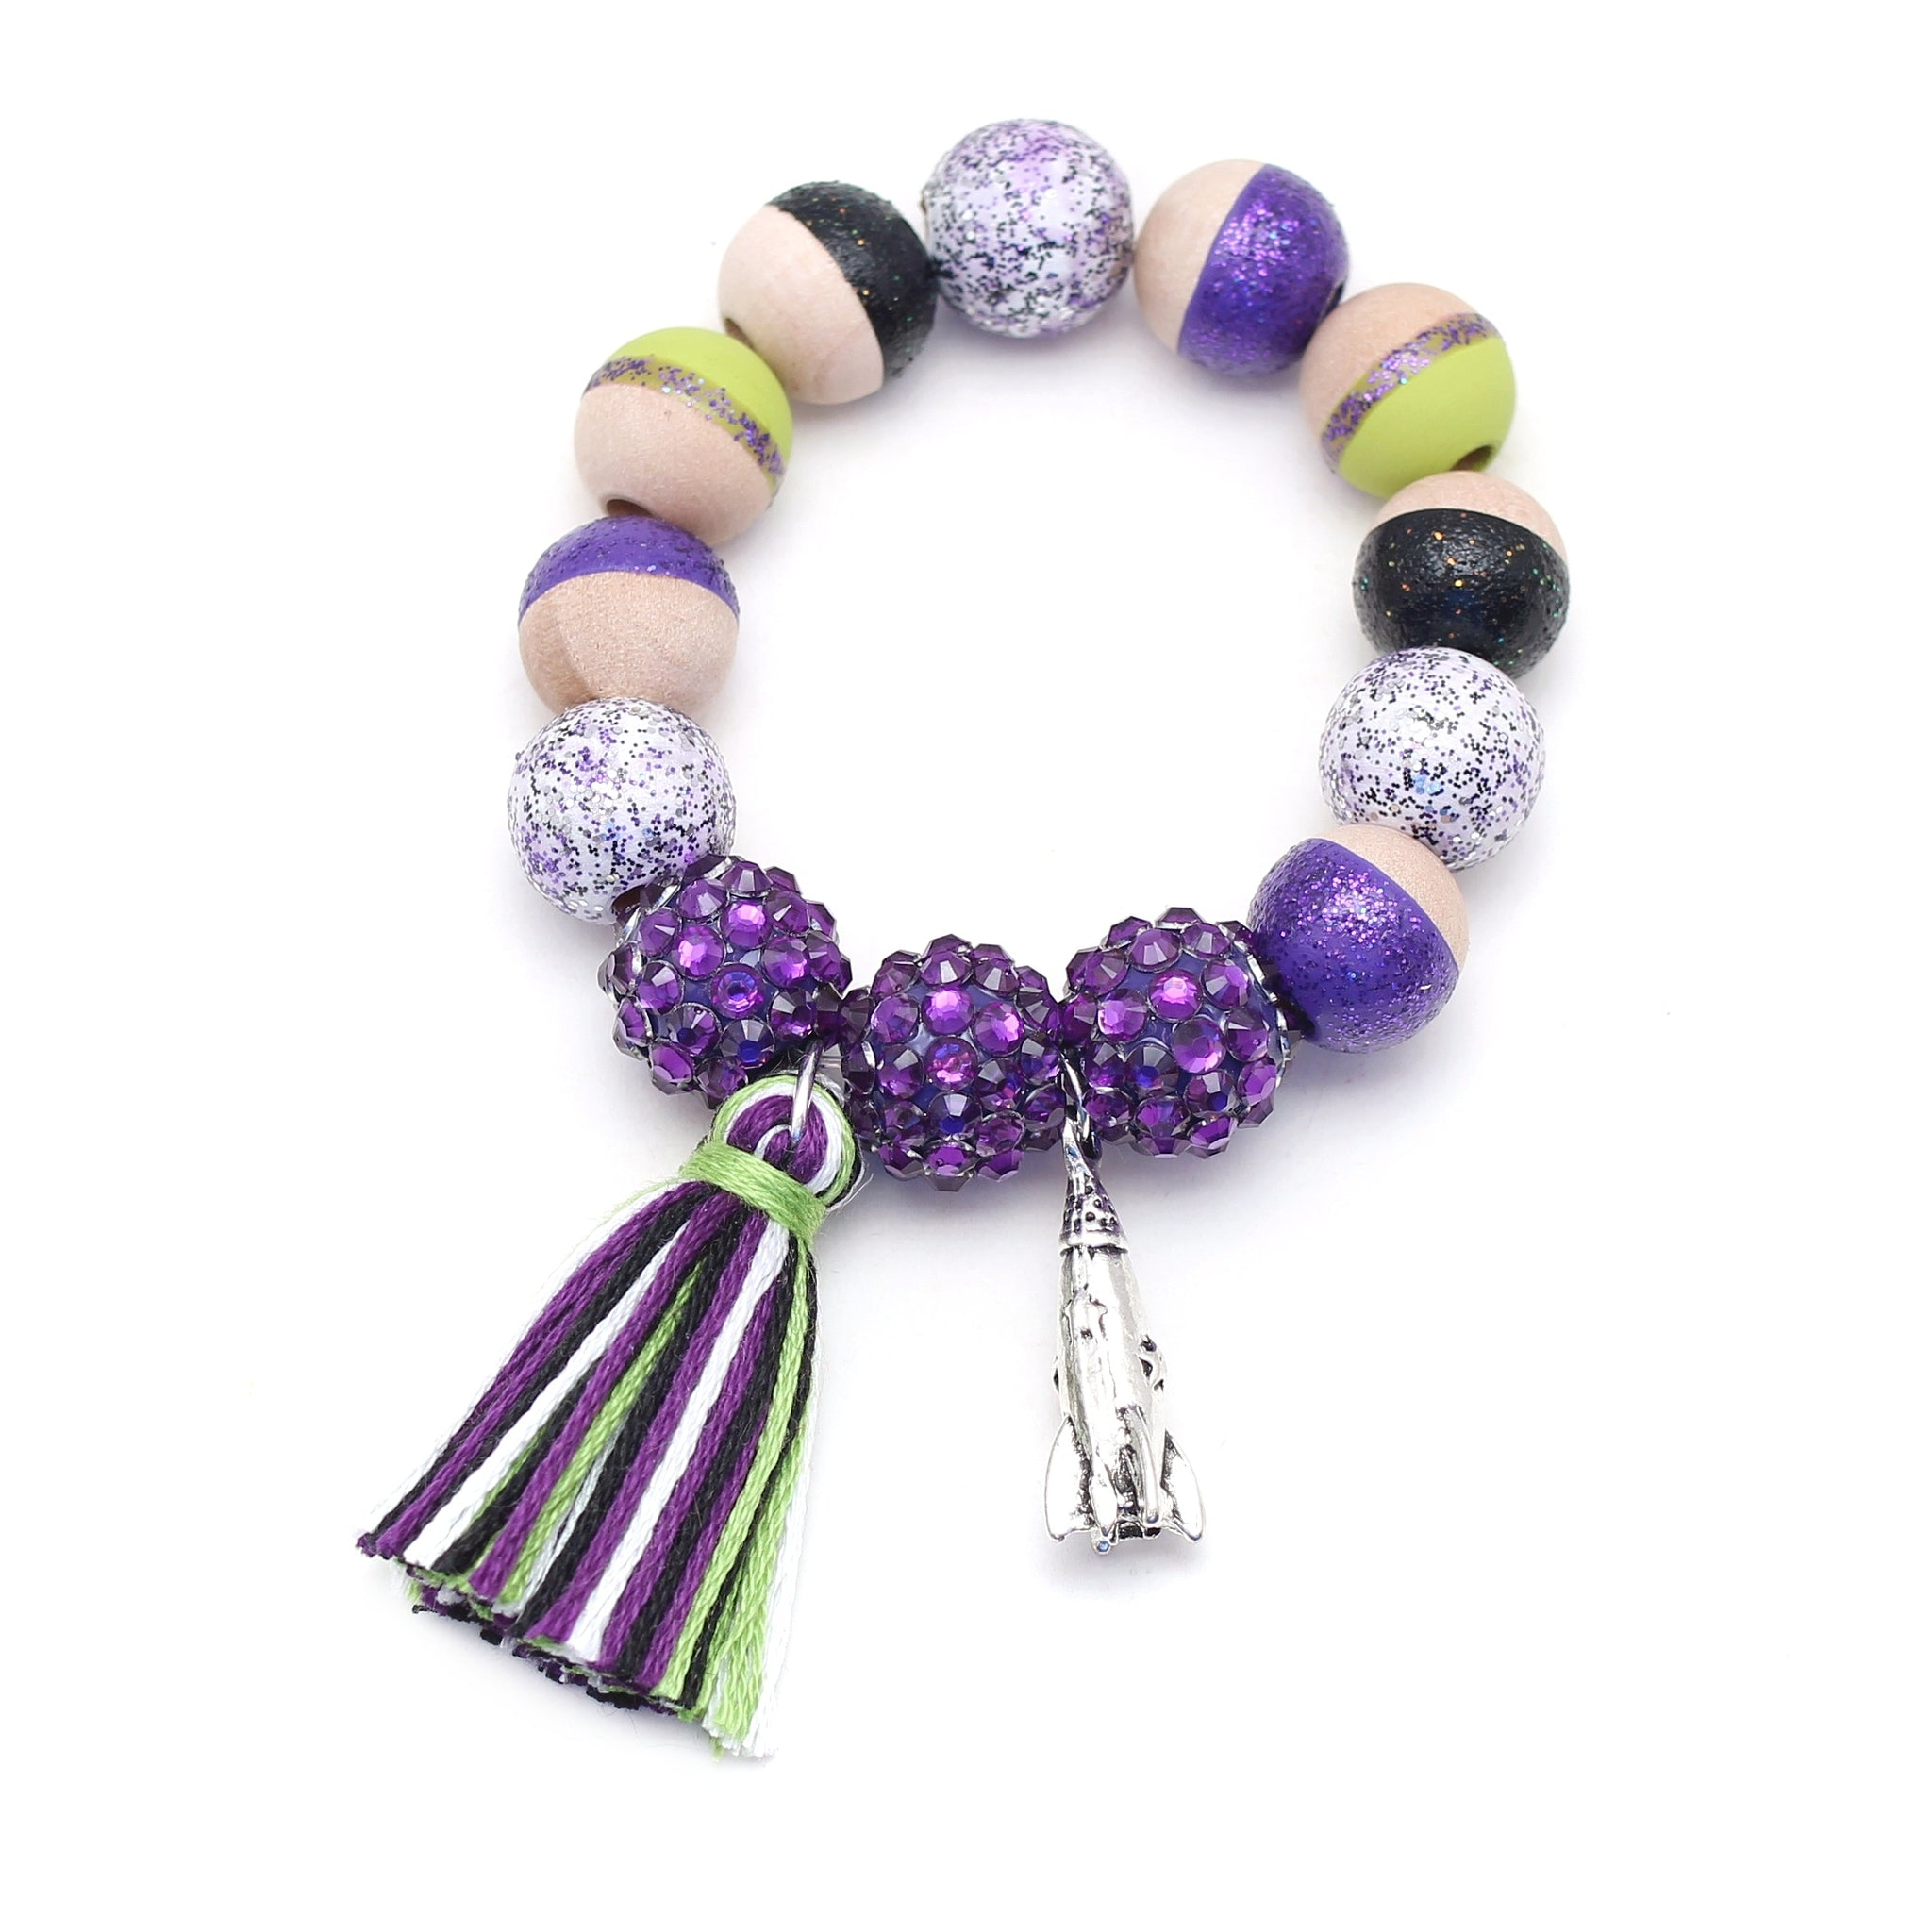 Buzz Lightyear Inspired Charm and Tassel Hand Painted Bracelet